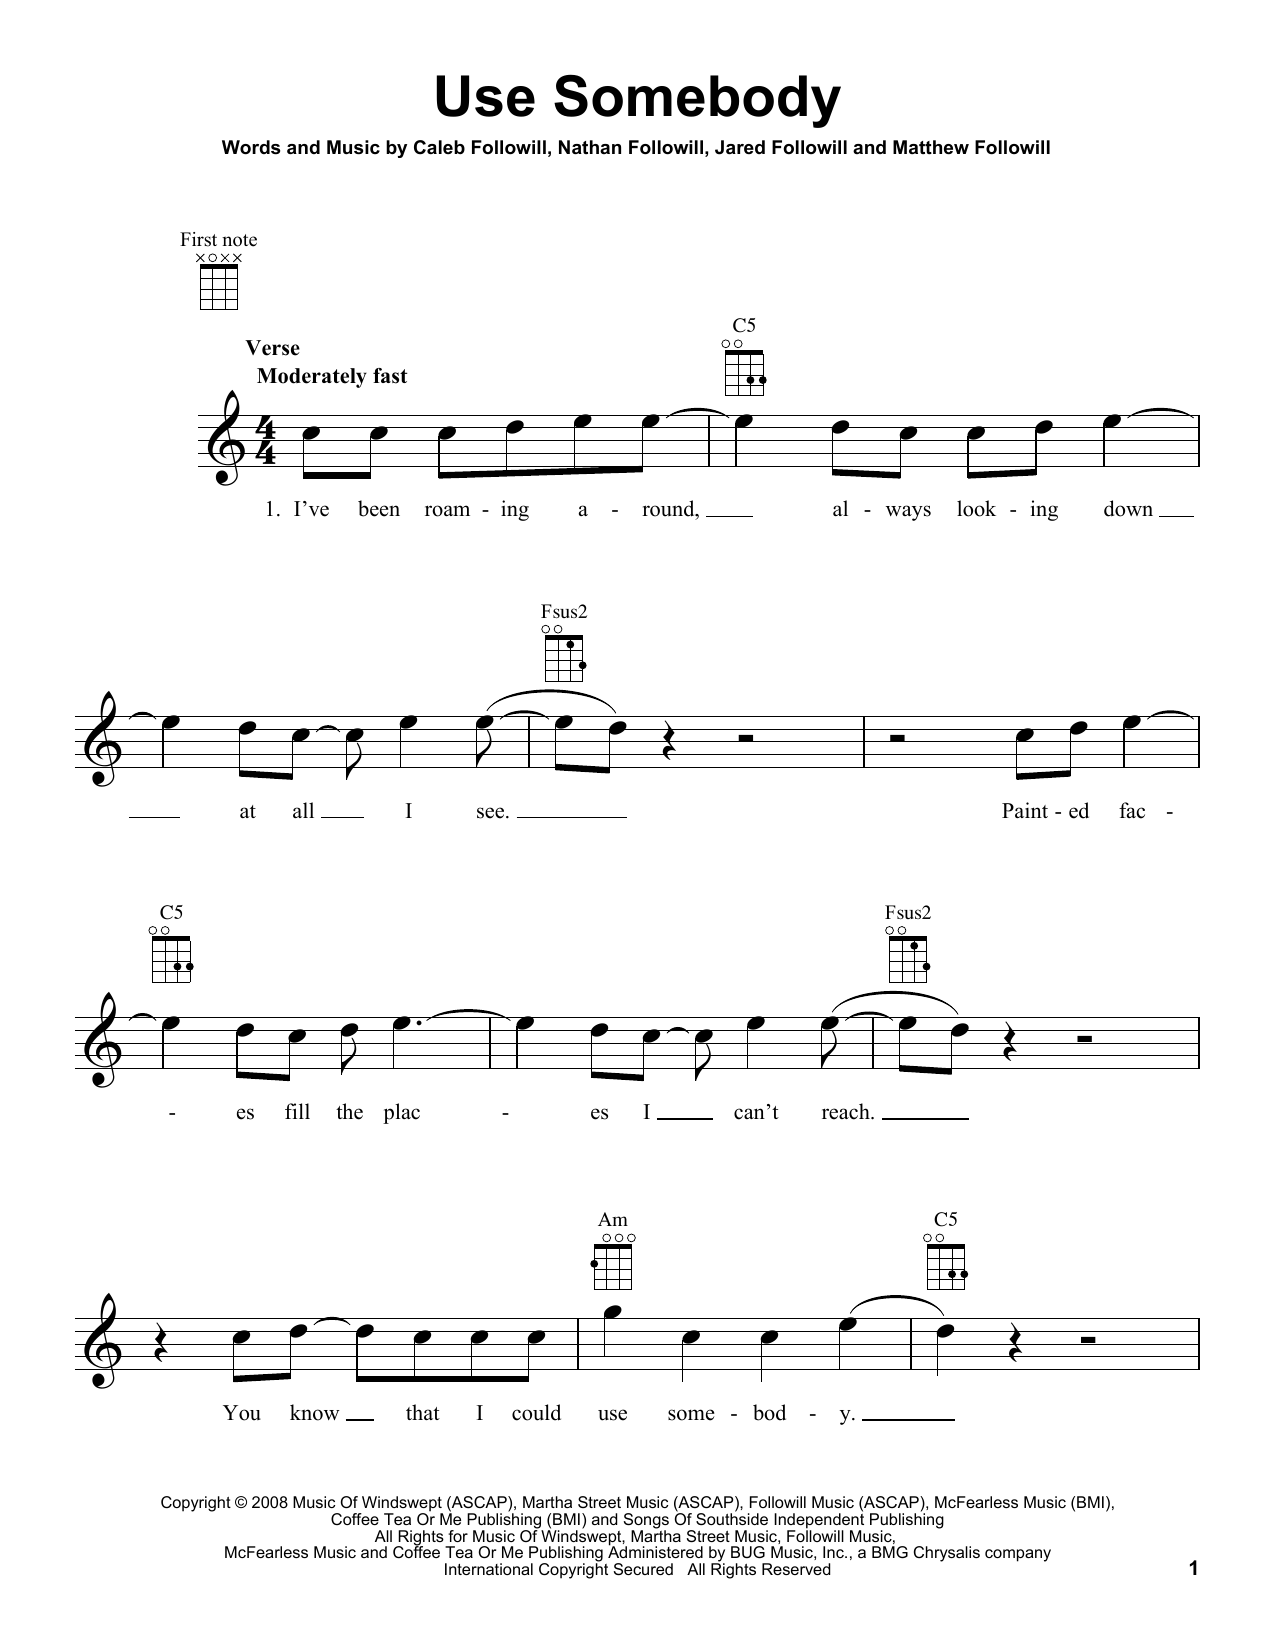 Use Somebody : Sheet Music Direct